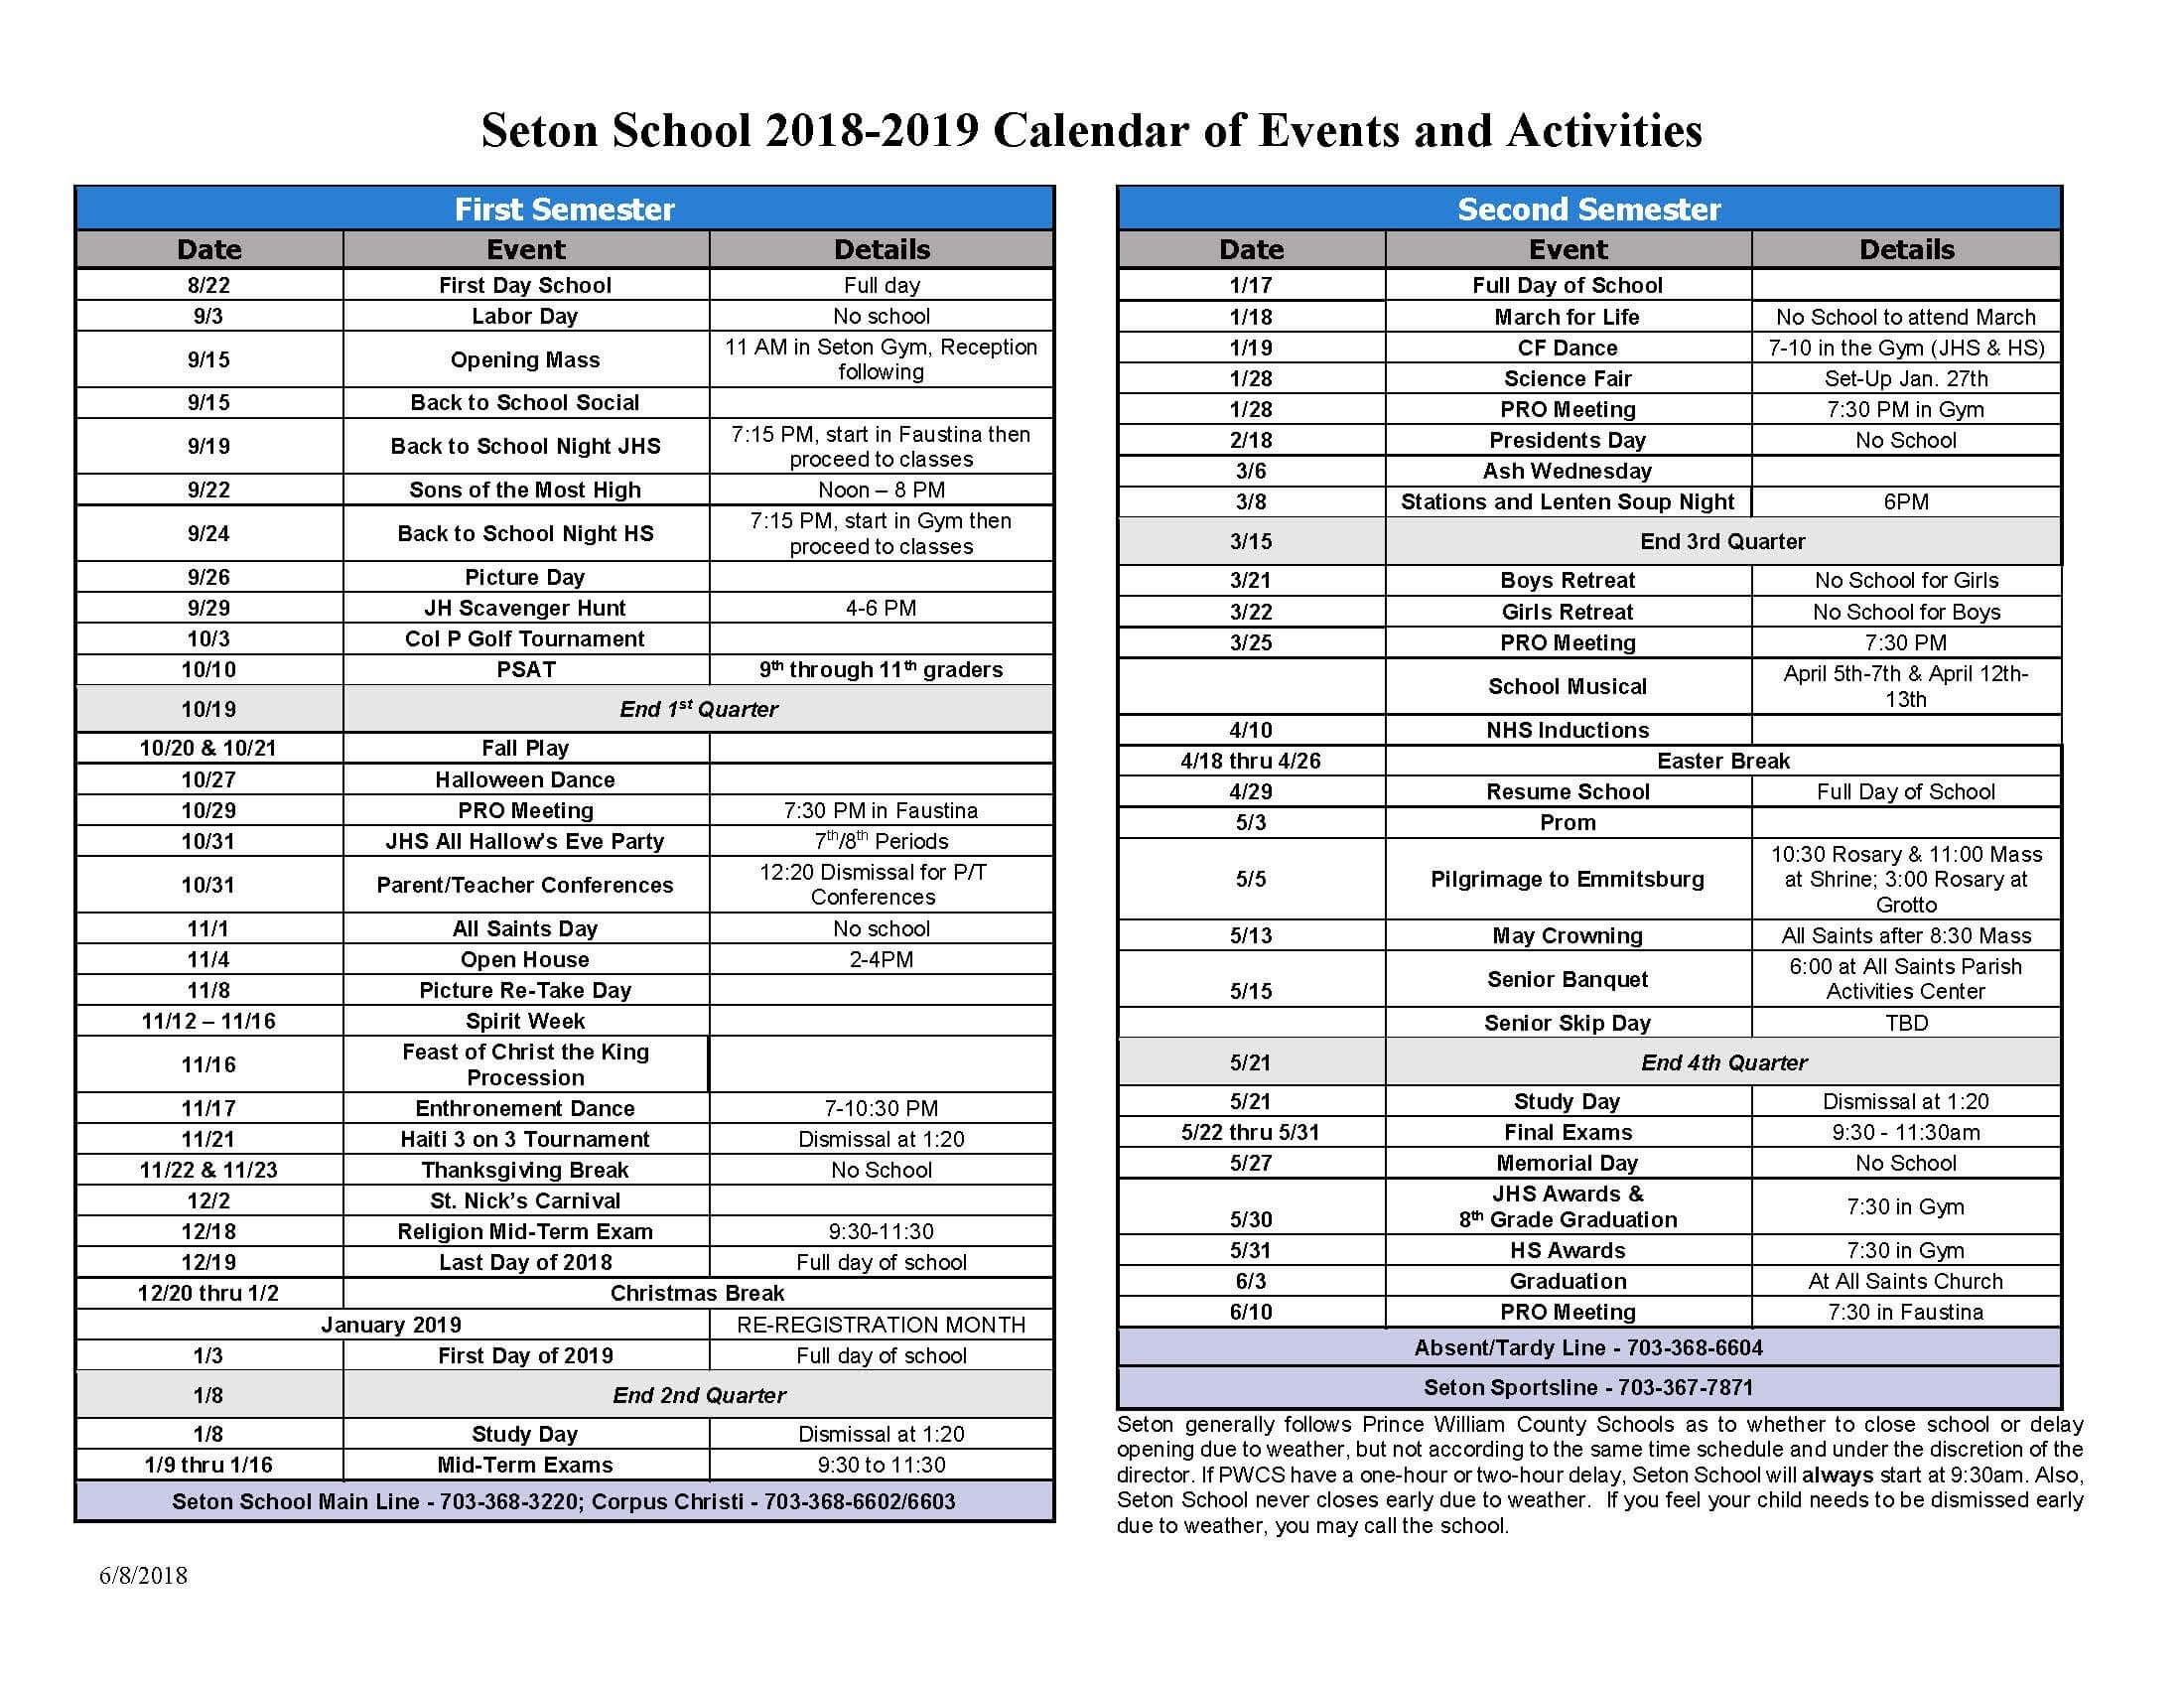 2018-2019 Seton School Calendar Of Events And Activities | Seton_School Calendar Of Events